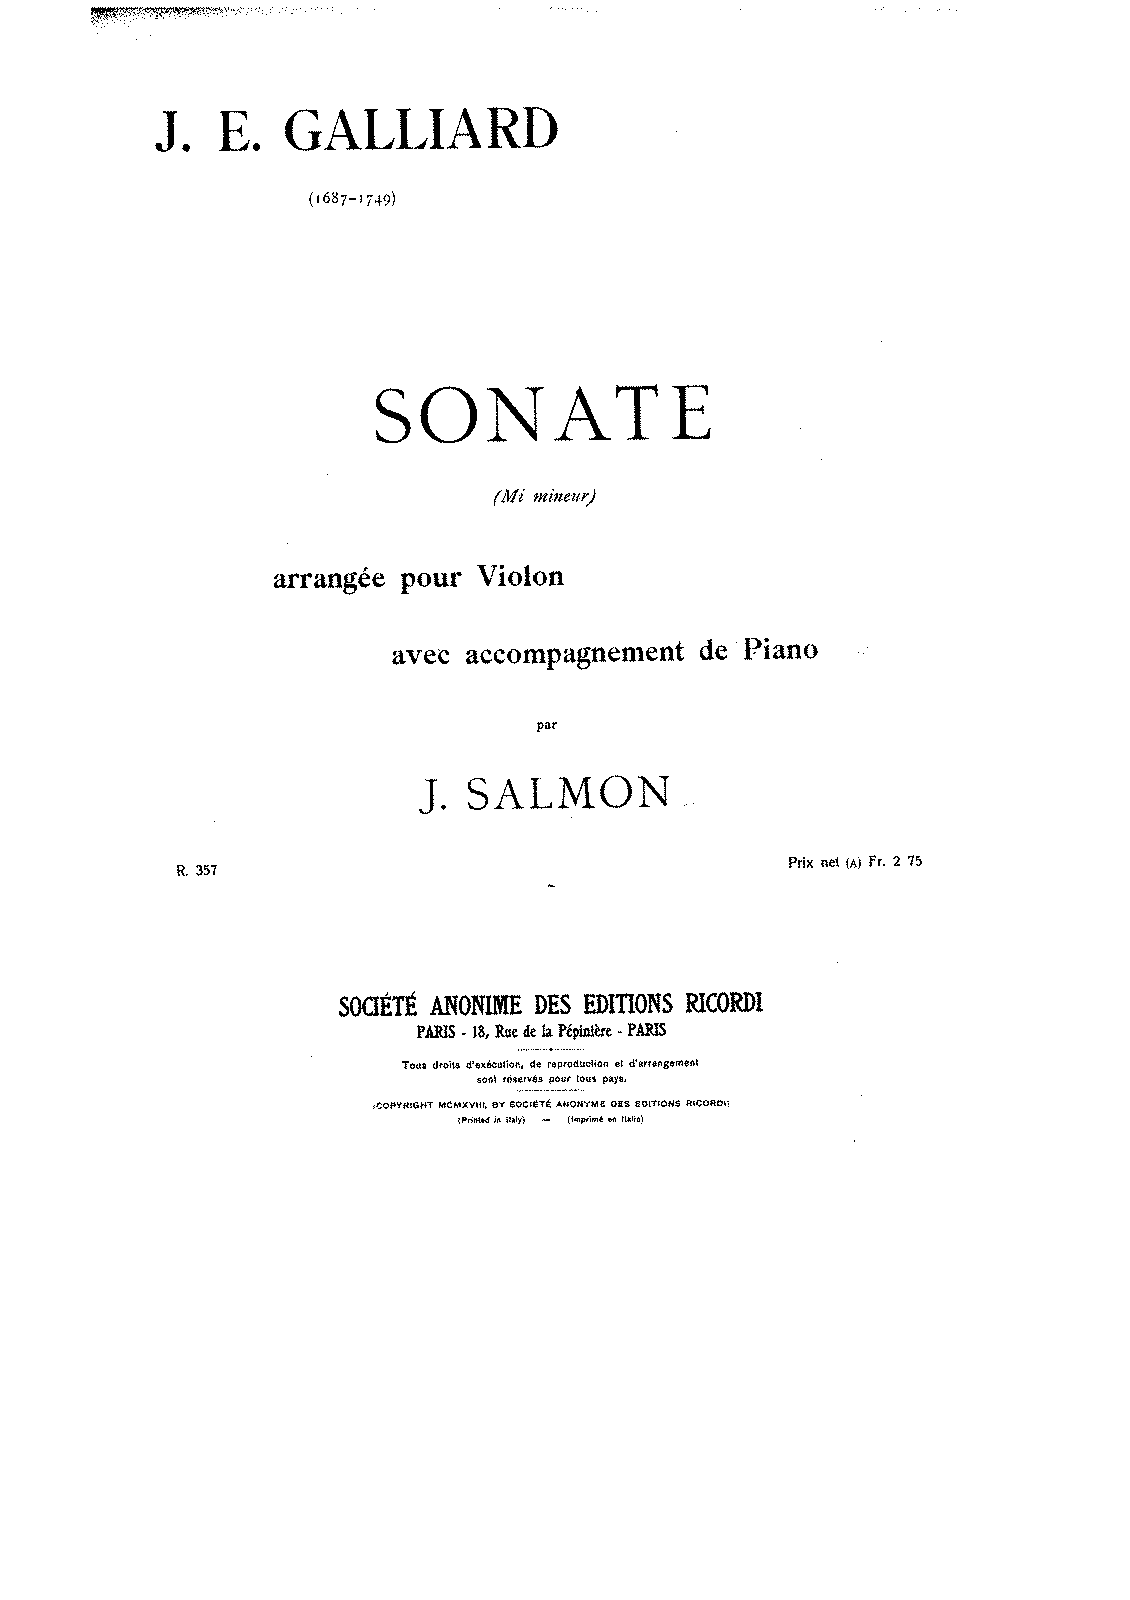 SIBLEY1802.24879.f3a7-39087004900843Sonate mi Galliard score.pdf